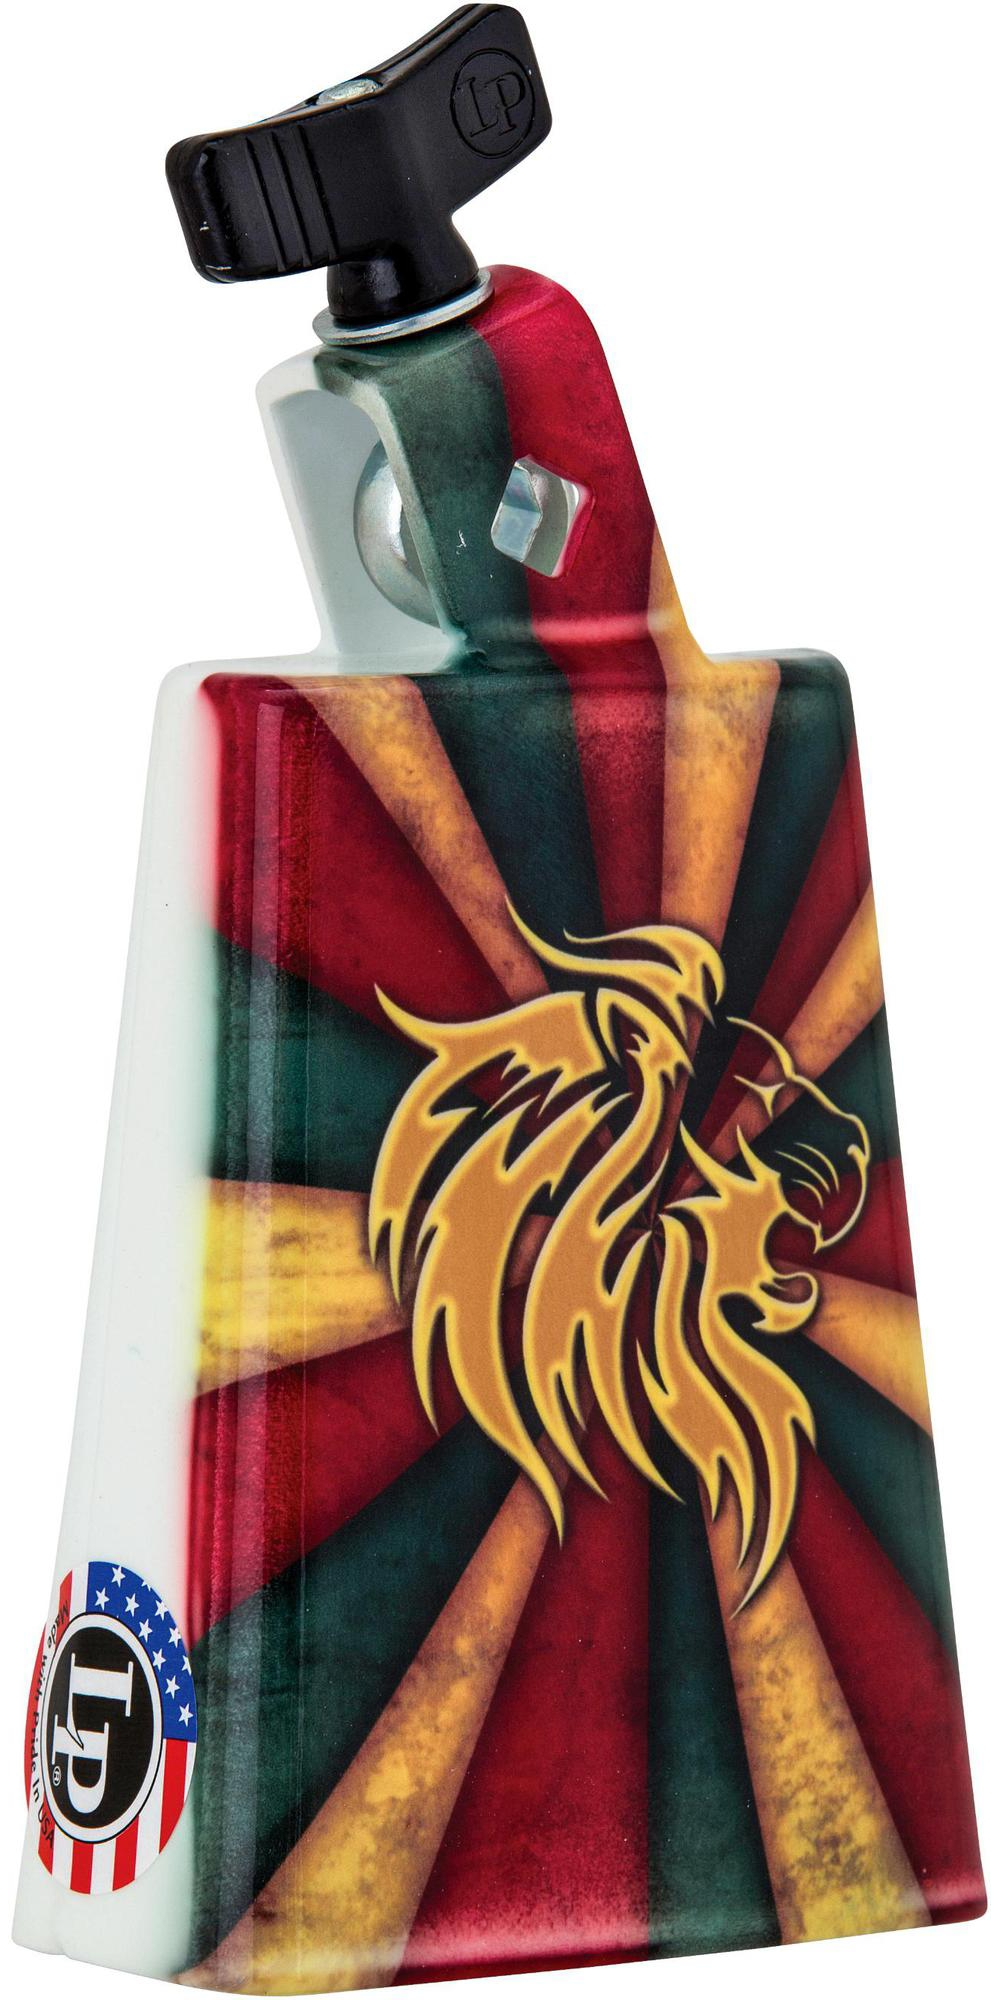 LP Collectabells Rasta Burst Cowbell 5 in. by LP